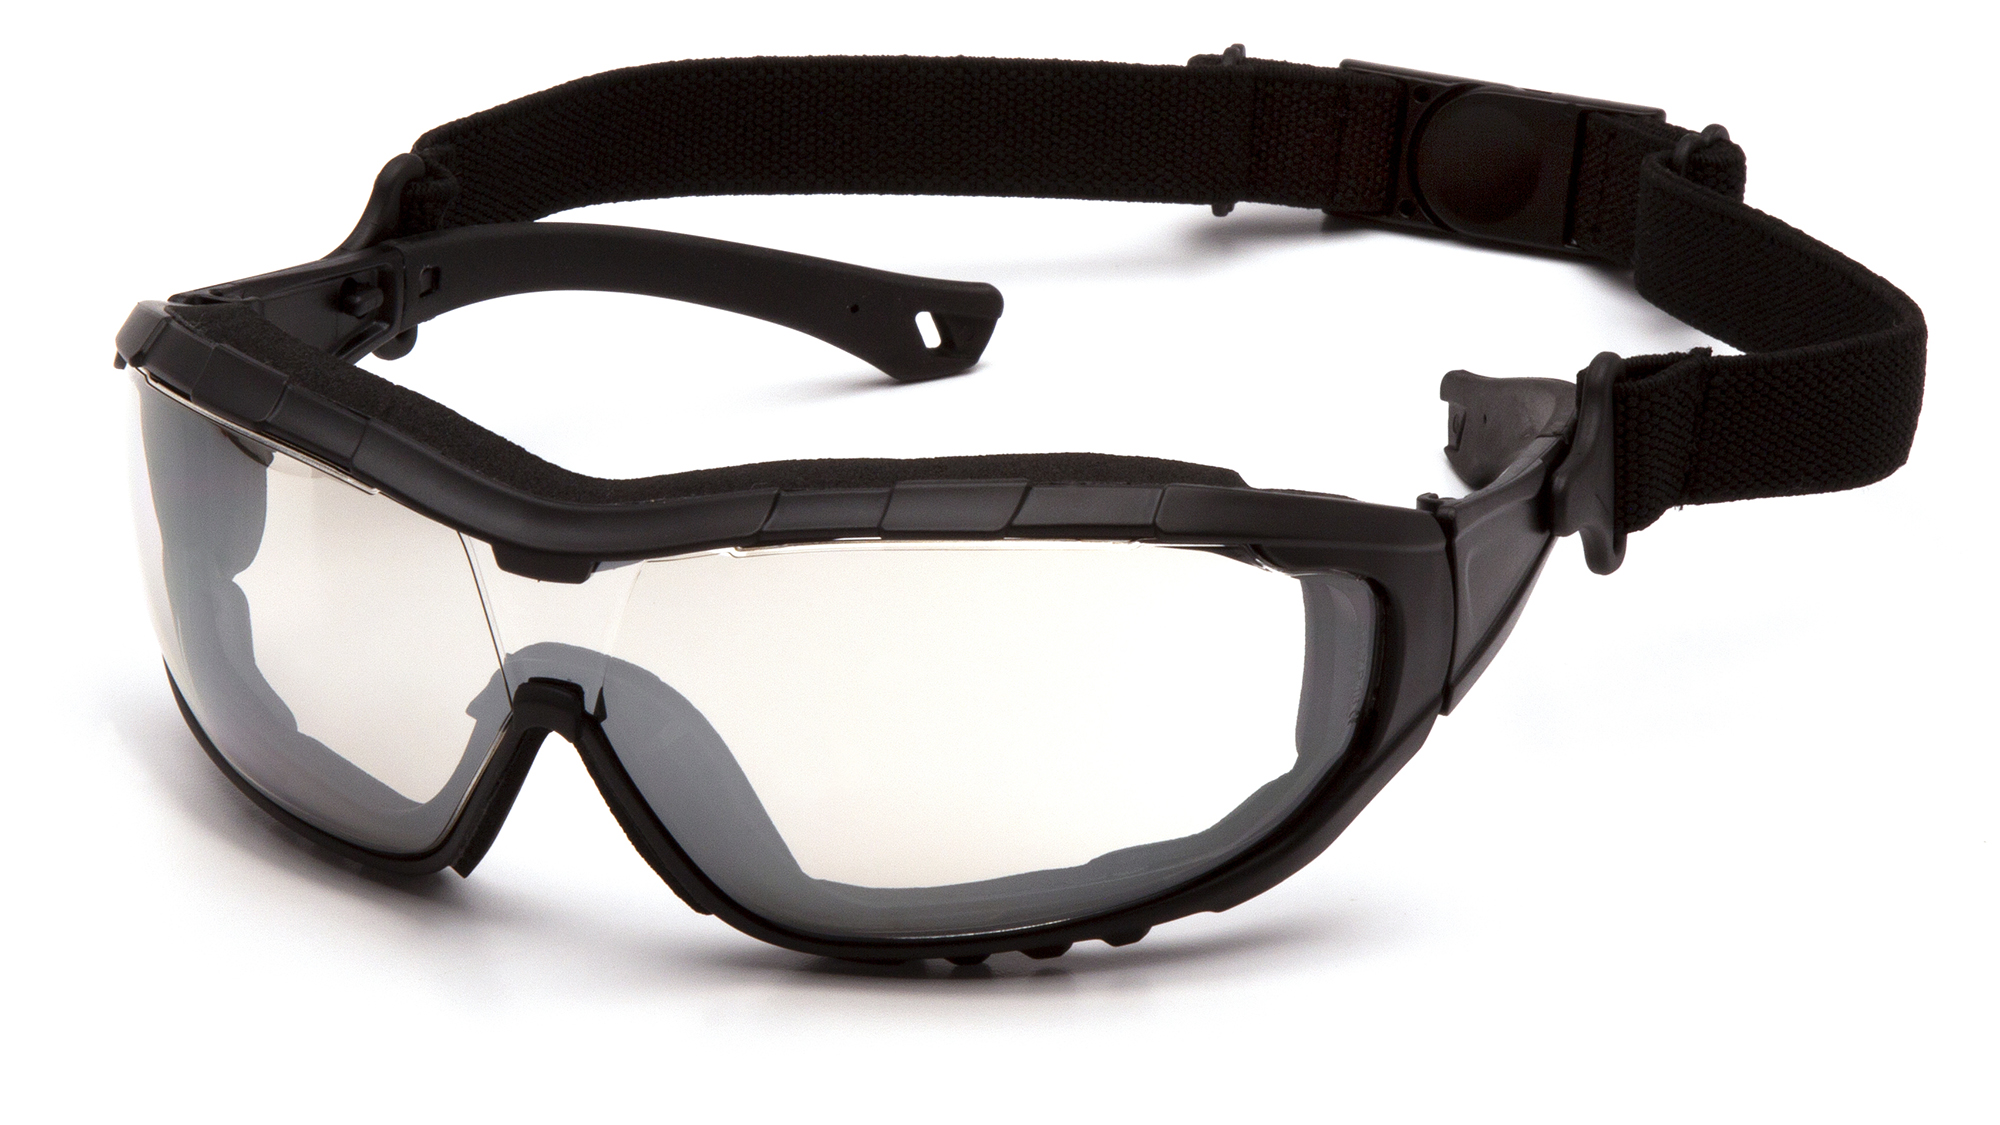 V3T - Indoor/Outdoor Mirror Anti-Fog Anti-Fog Lens Black Temples/Strap